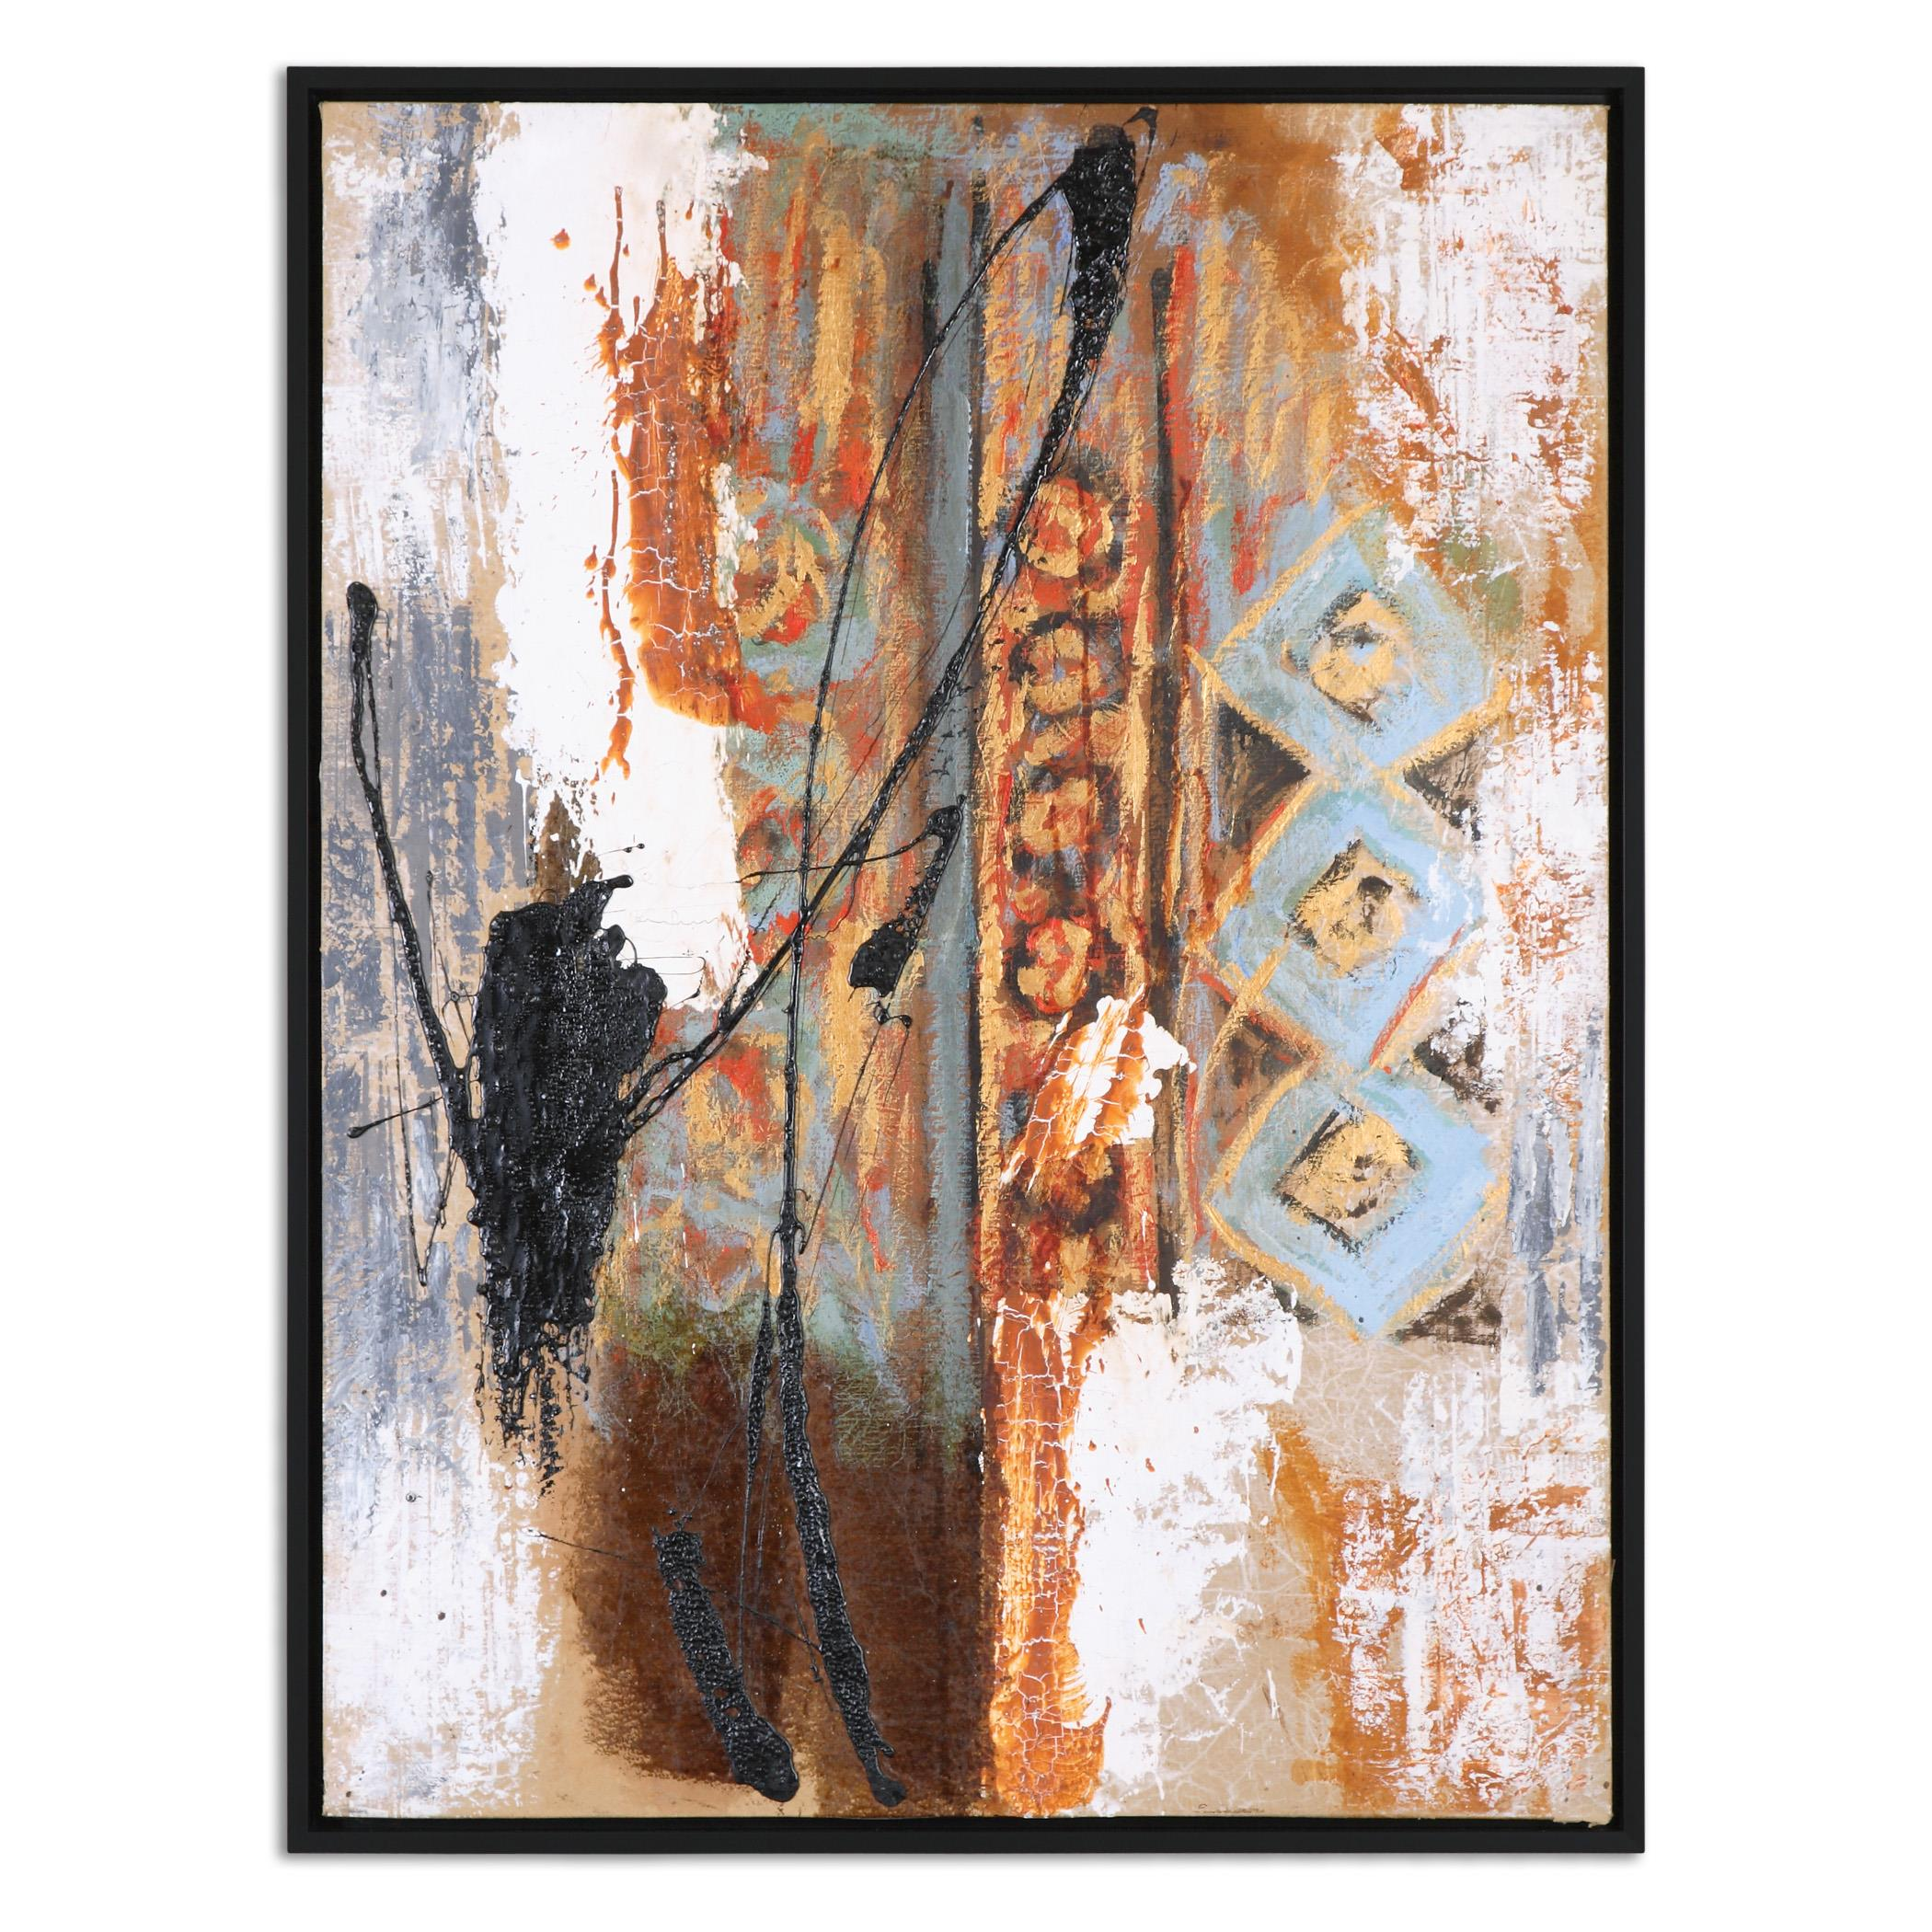 Art Choices Modern Art by Uttermost at Upper Room Home Furnishings